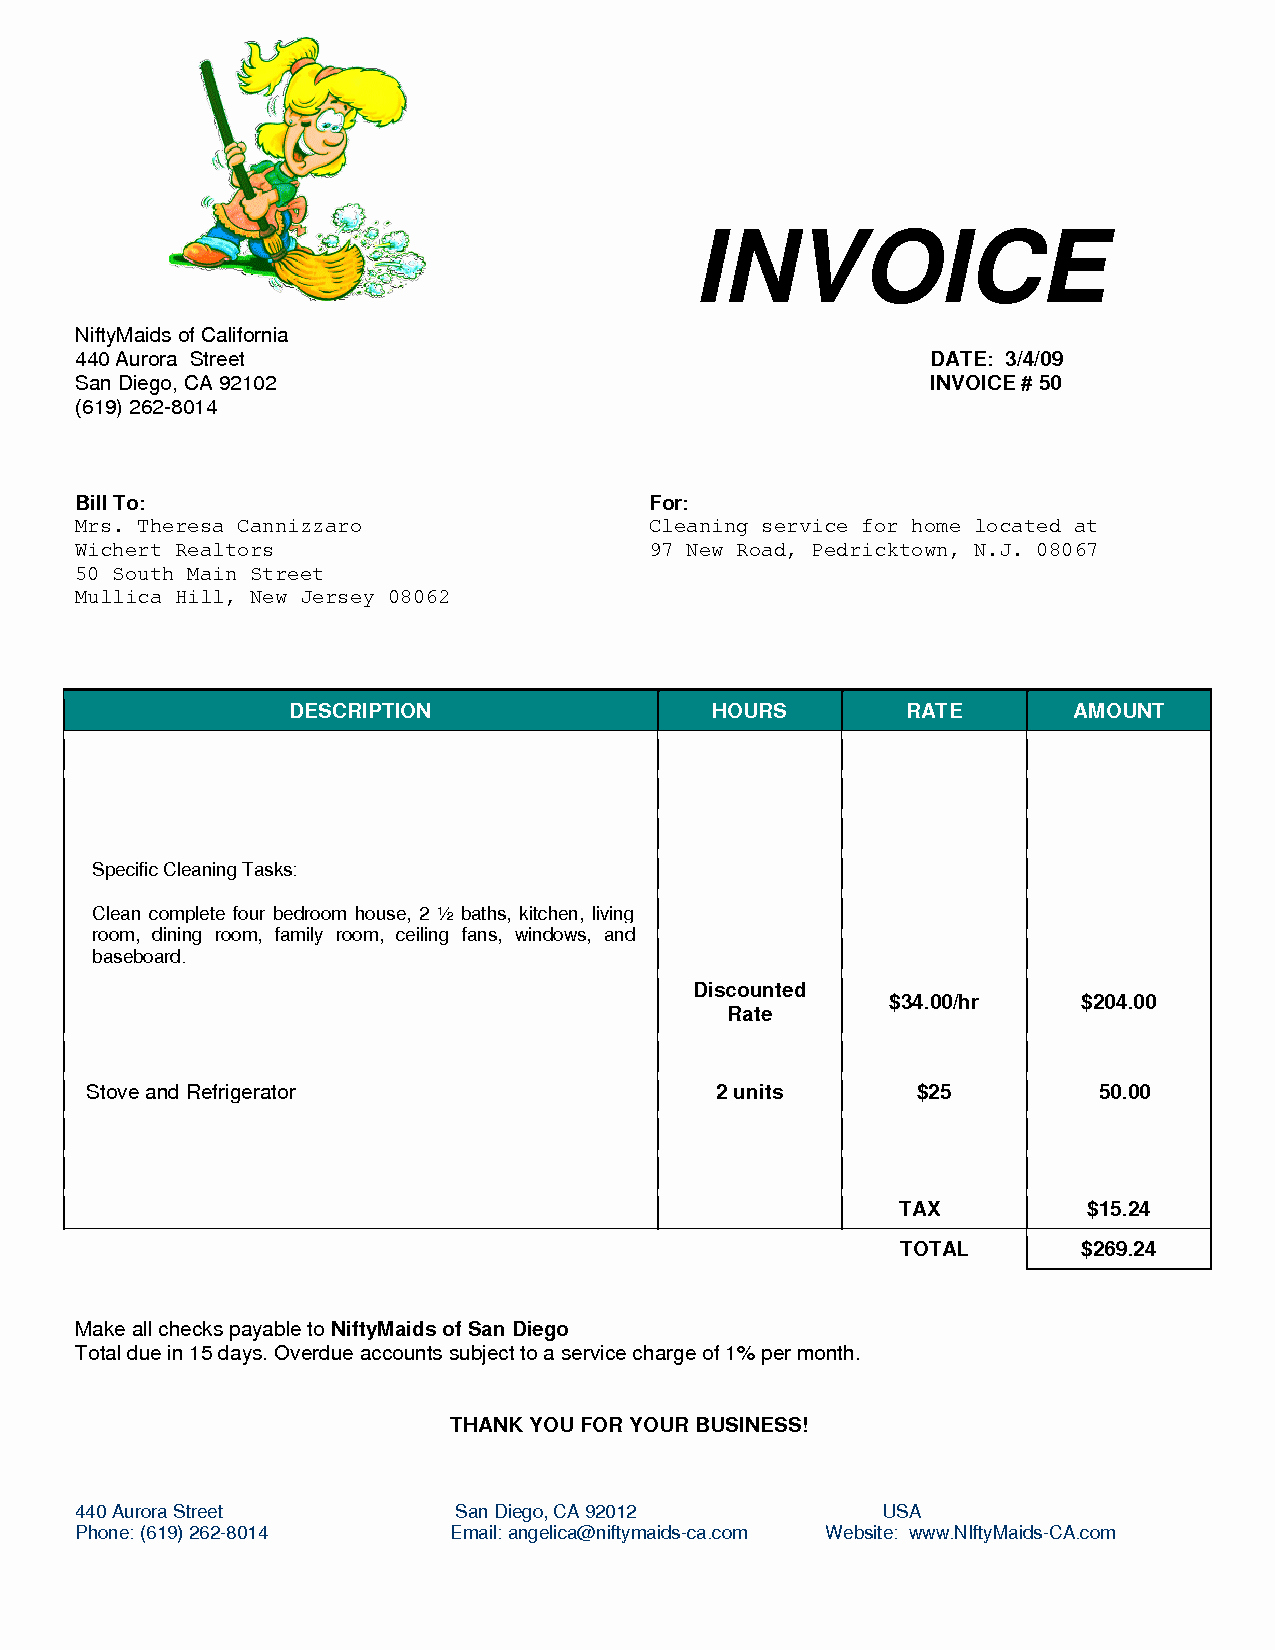 Cleaning Services Invoice Template Fresh Cleaning Invoice Template Uk